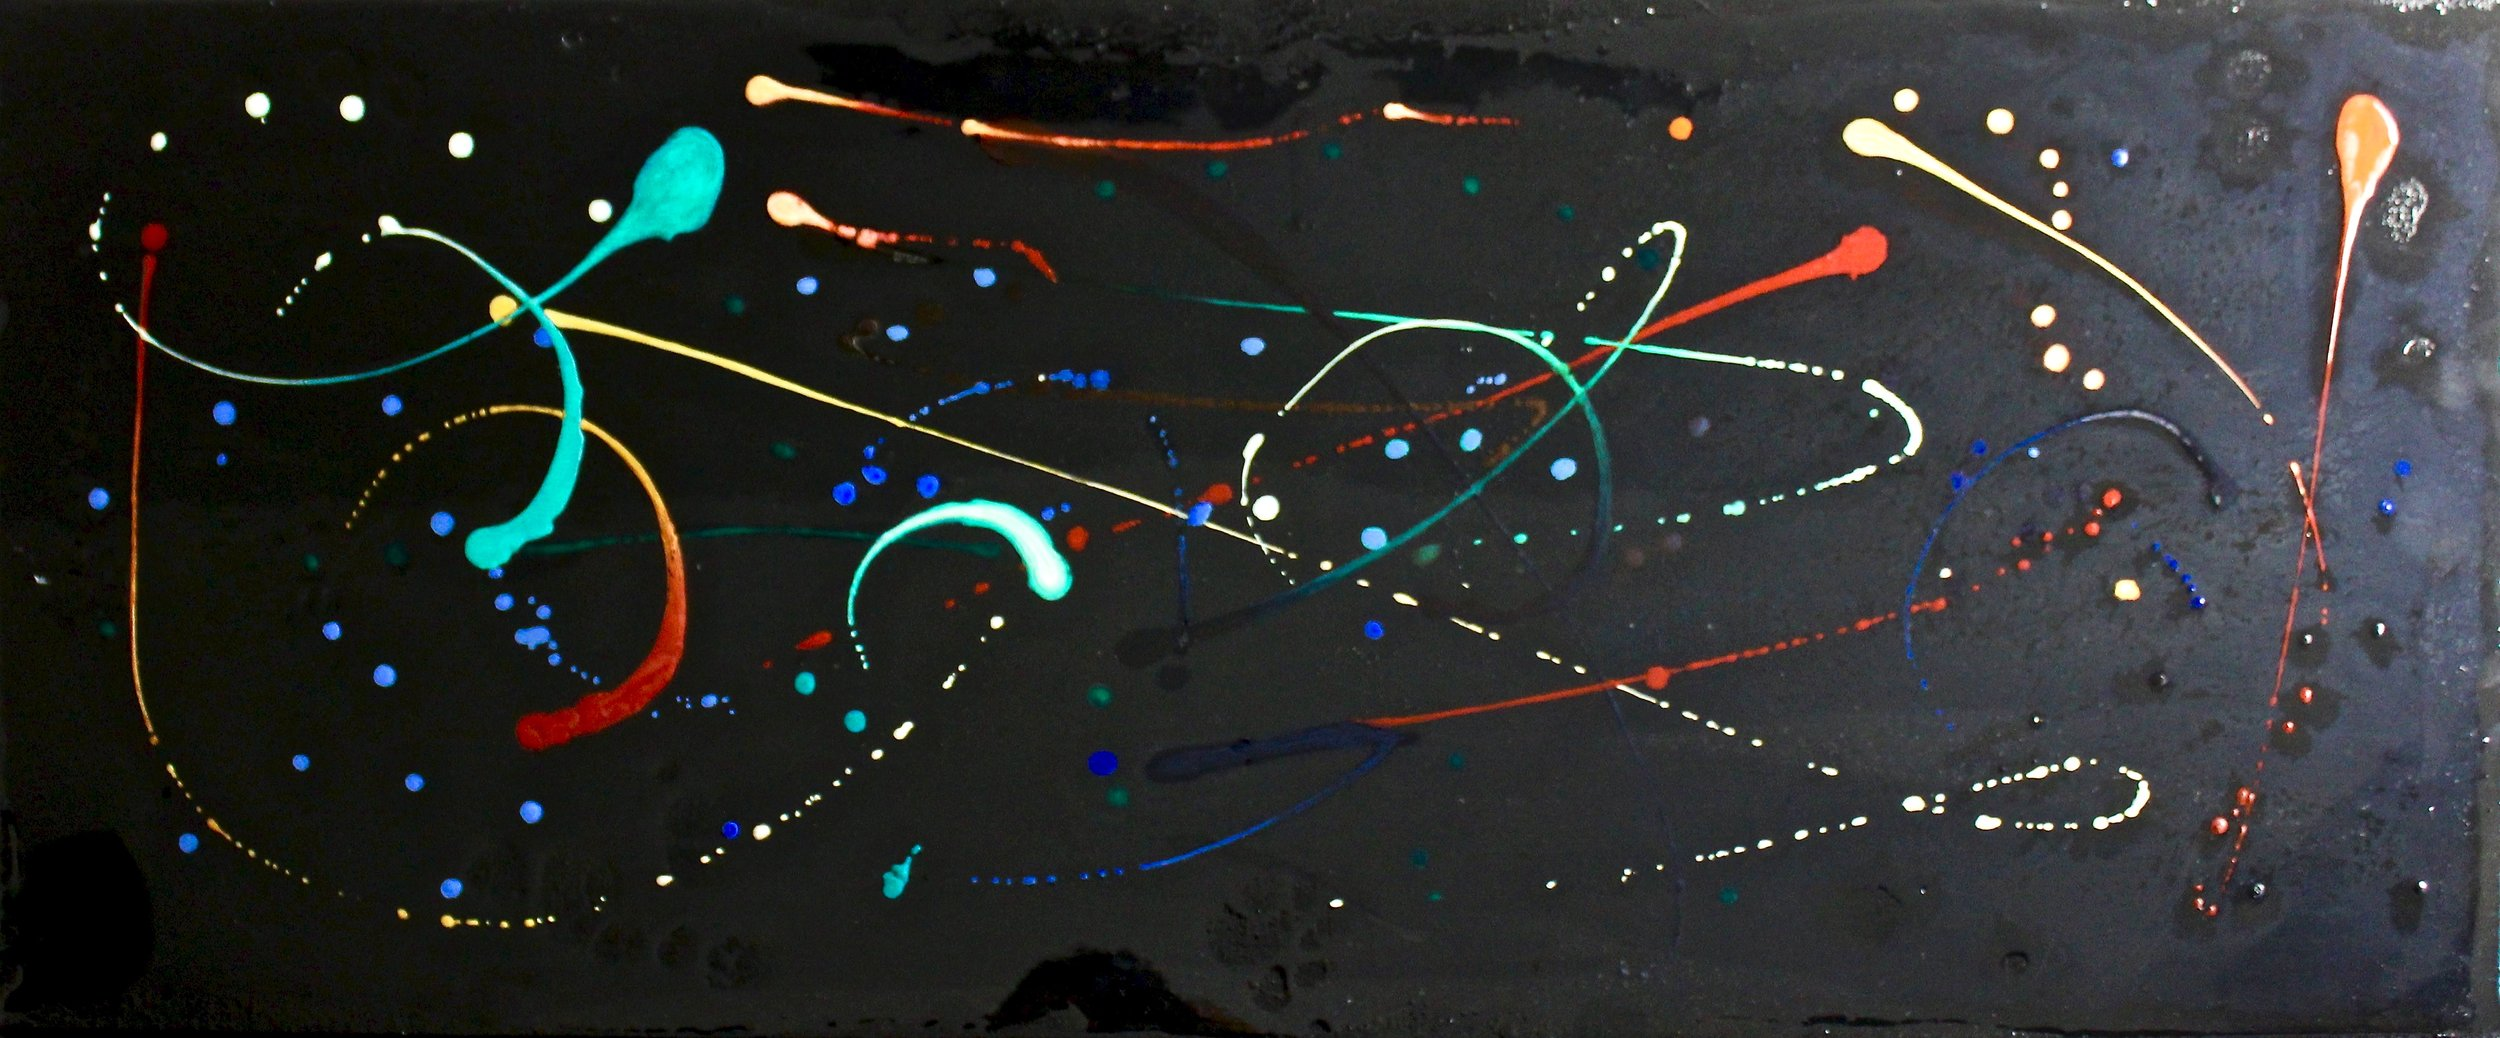 Stardust -  2017 mixed media; wax, acrylic and resin on canvas 40.5cm x 101.5cm